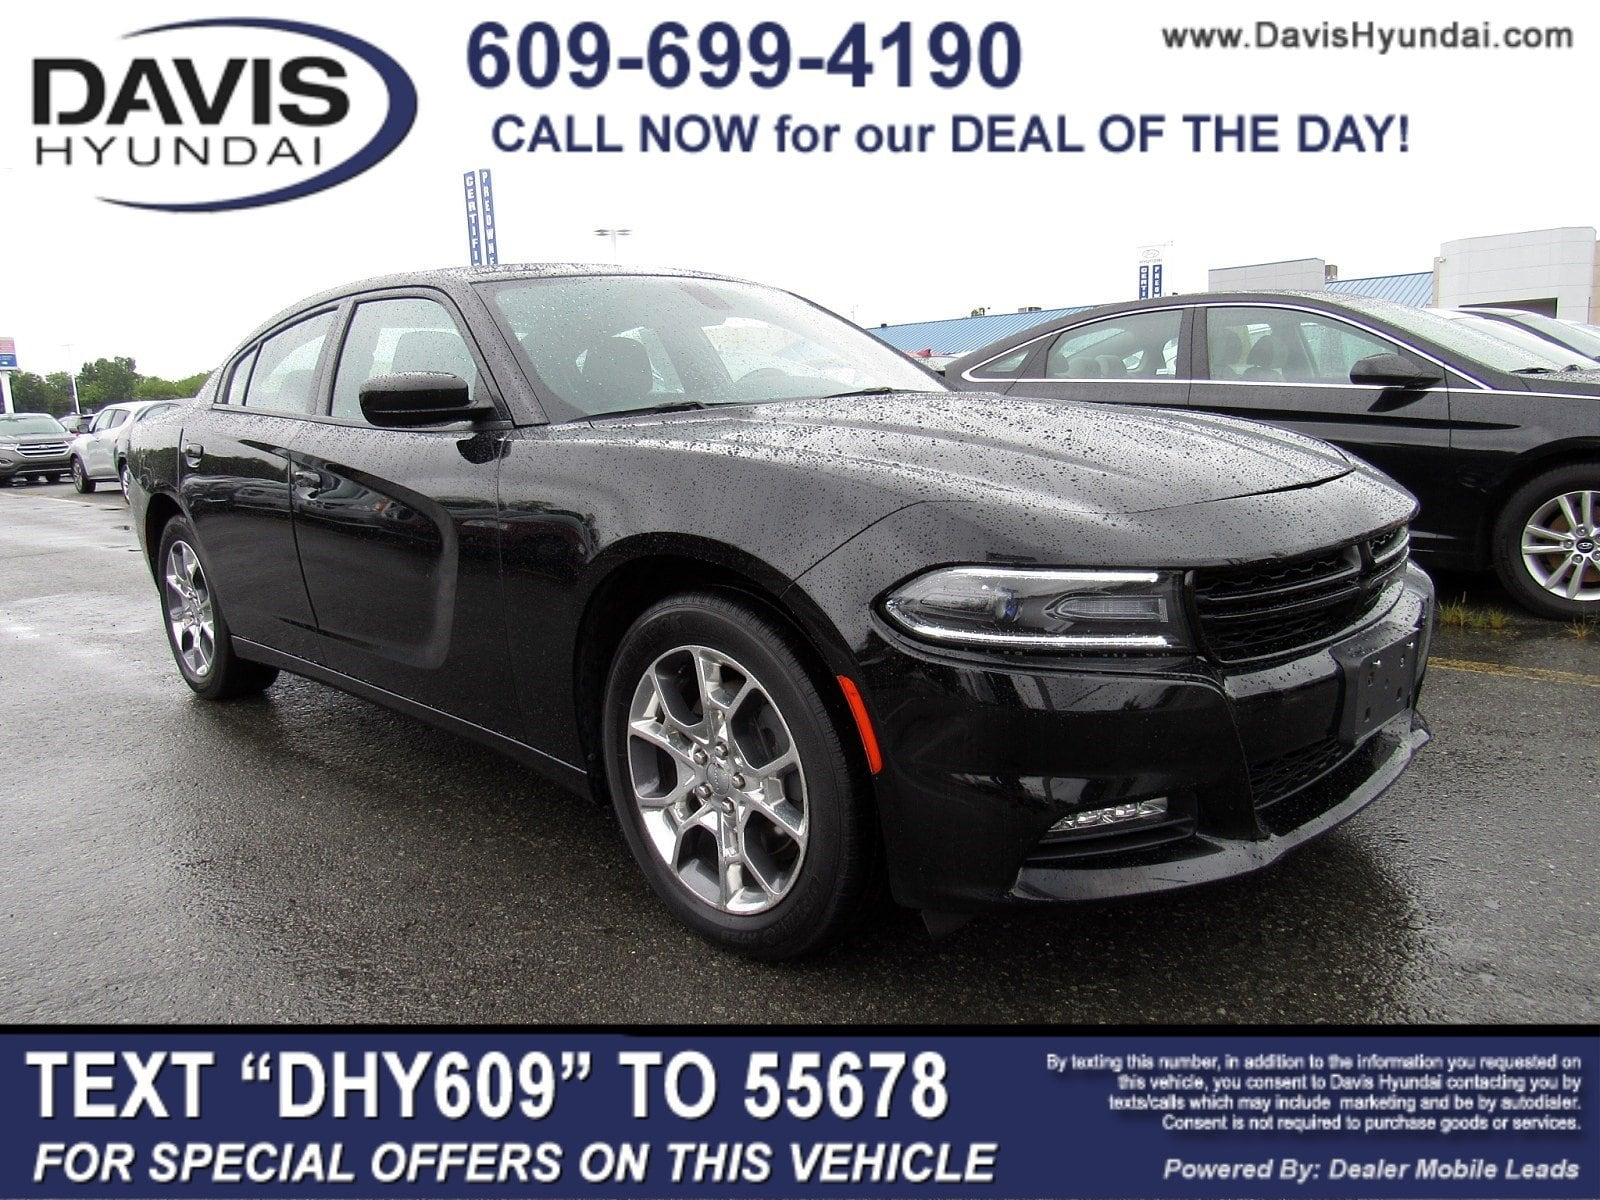 Used Dodge Charger for Sale Unique 2016 Used Dodge Charger for Sale at Davis Hyundai In Ewing Nj